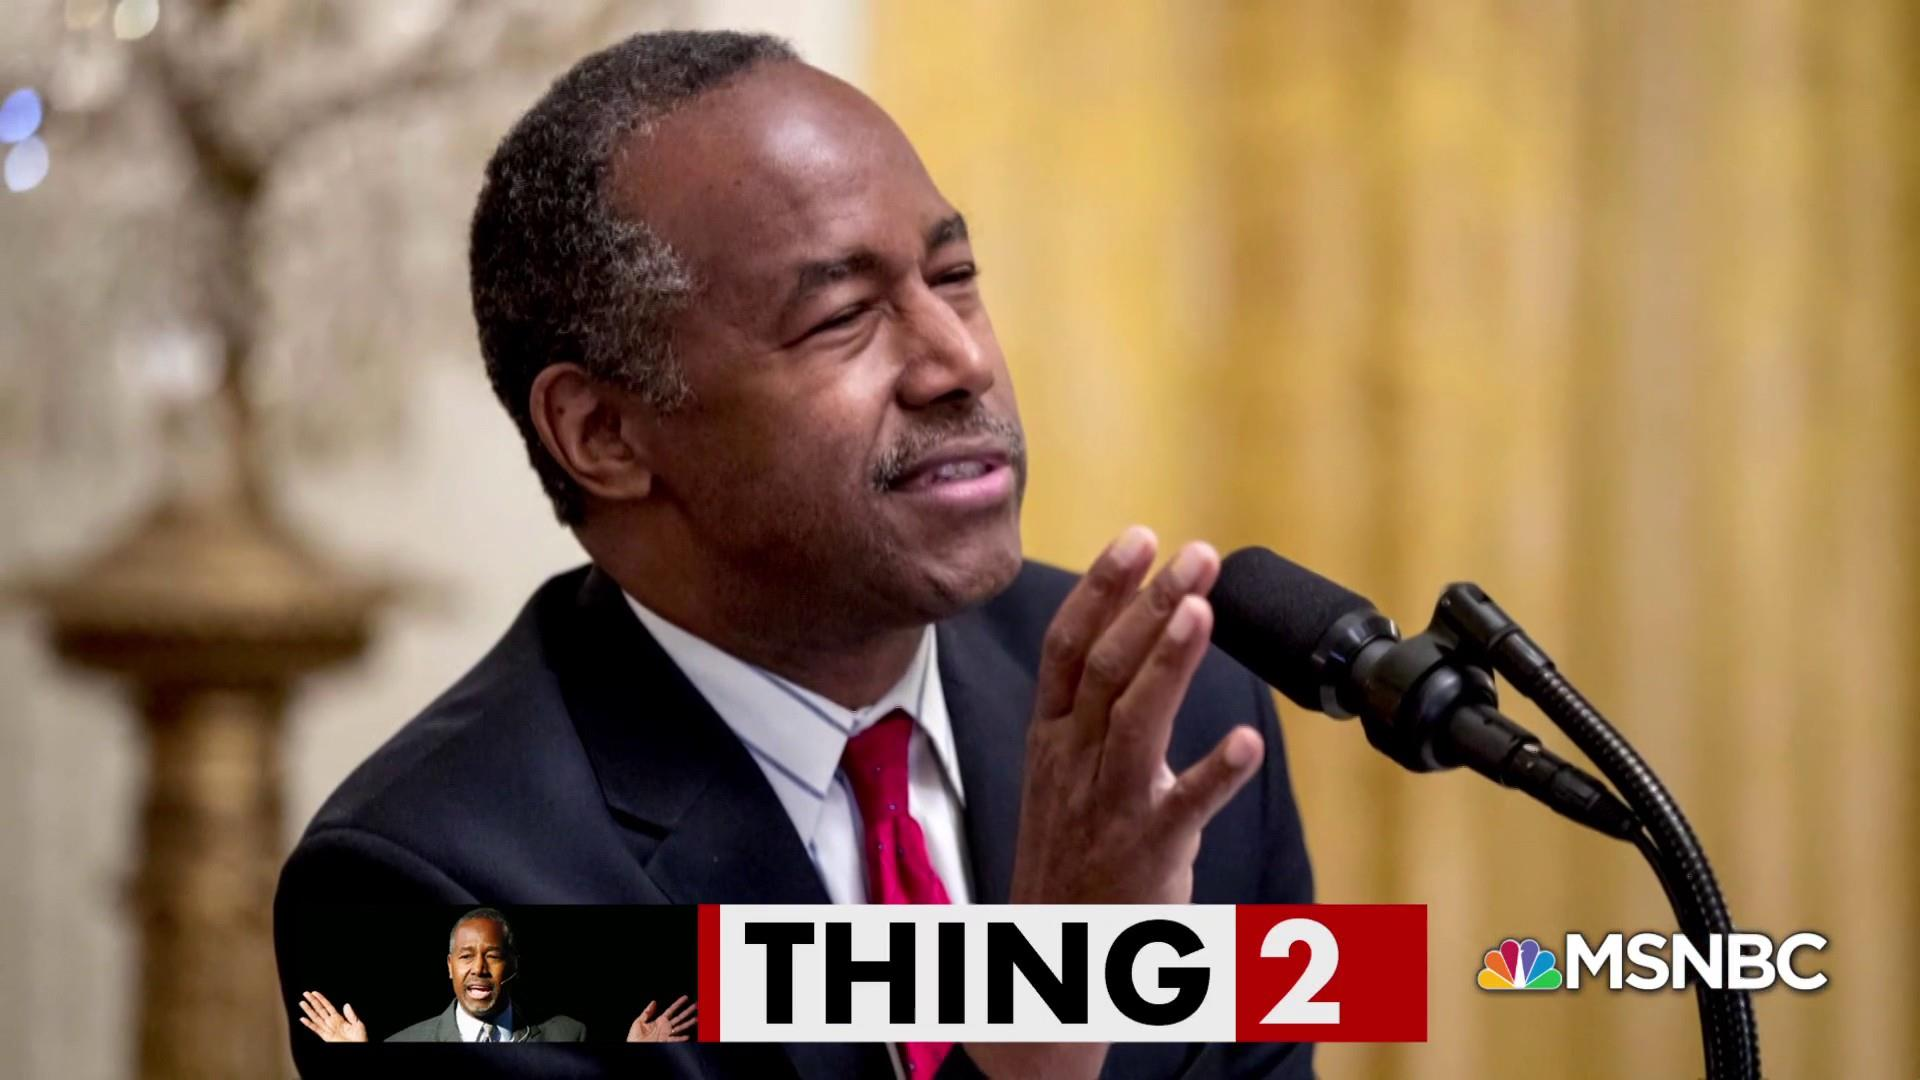 Ben Carson learns to work like Trump